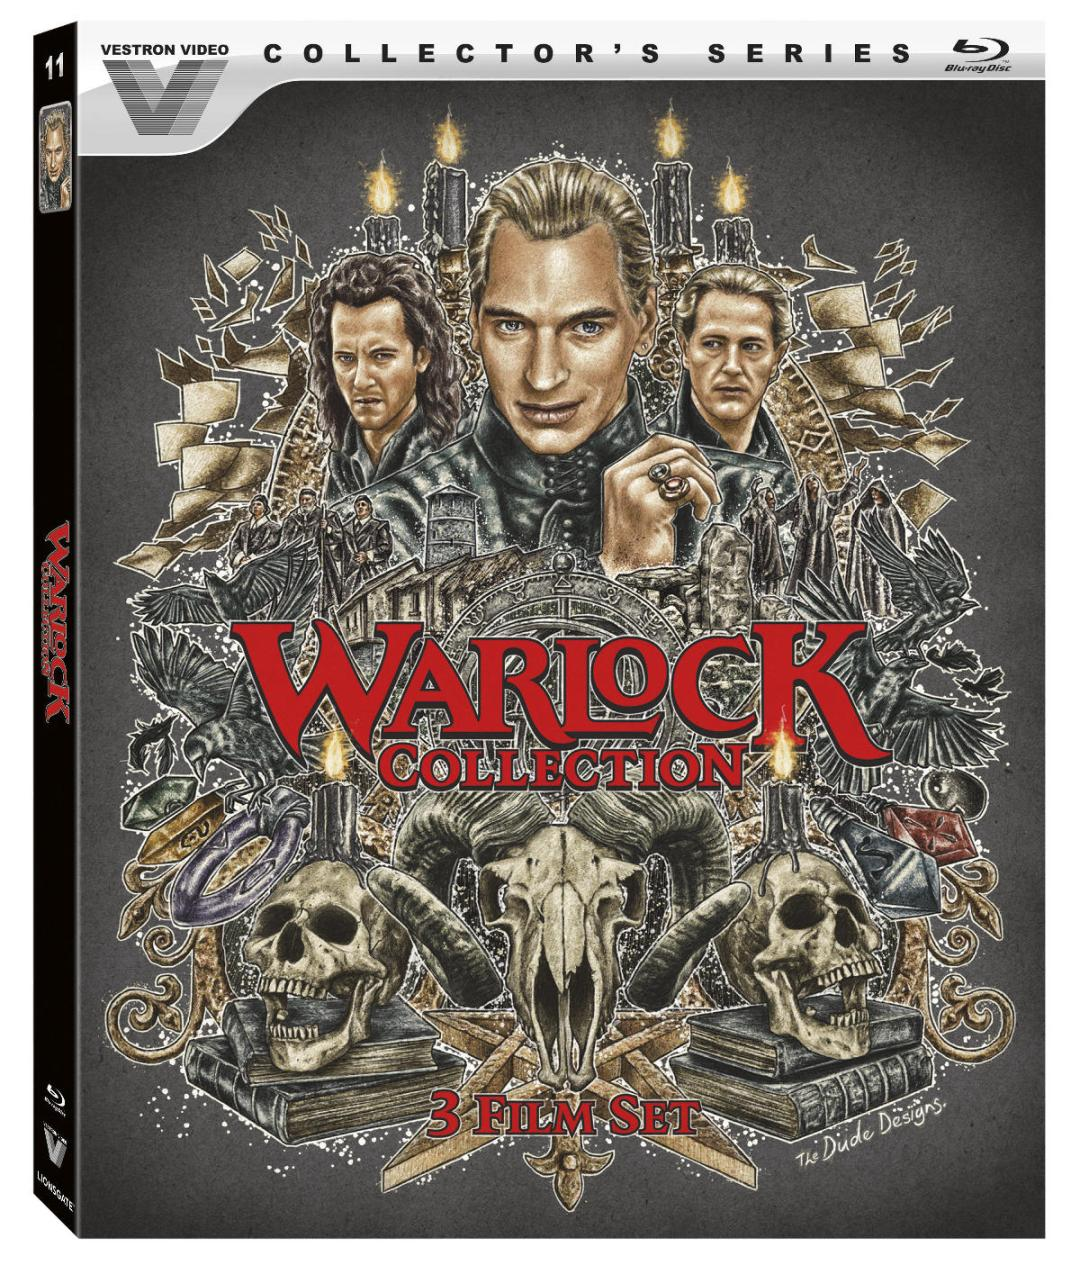 A Special 'Warlock' Collection Is Set For This Fall